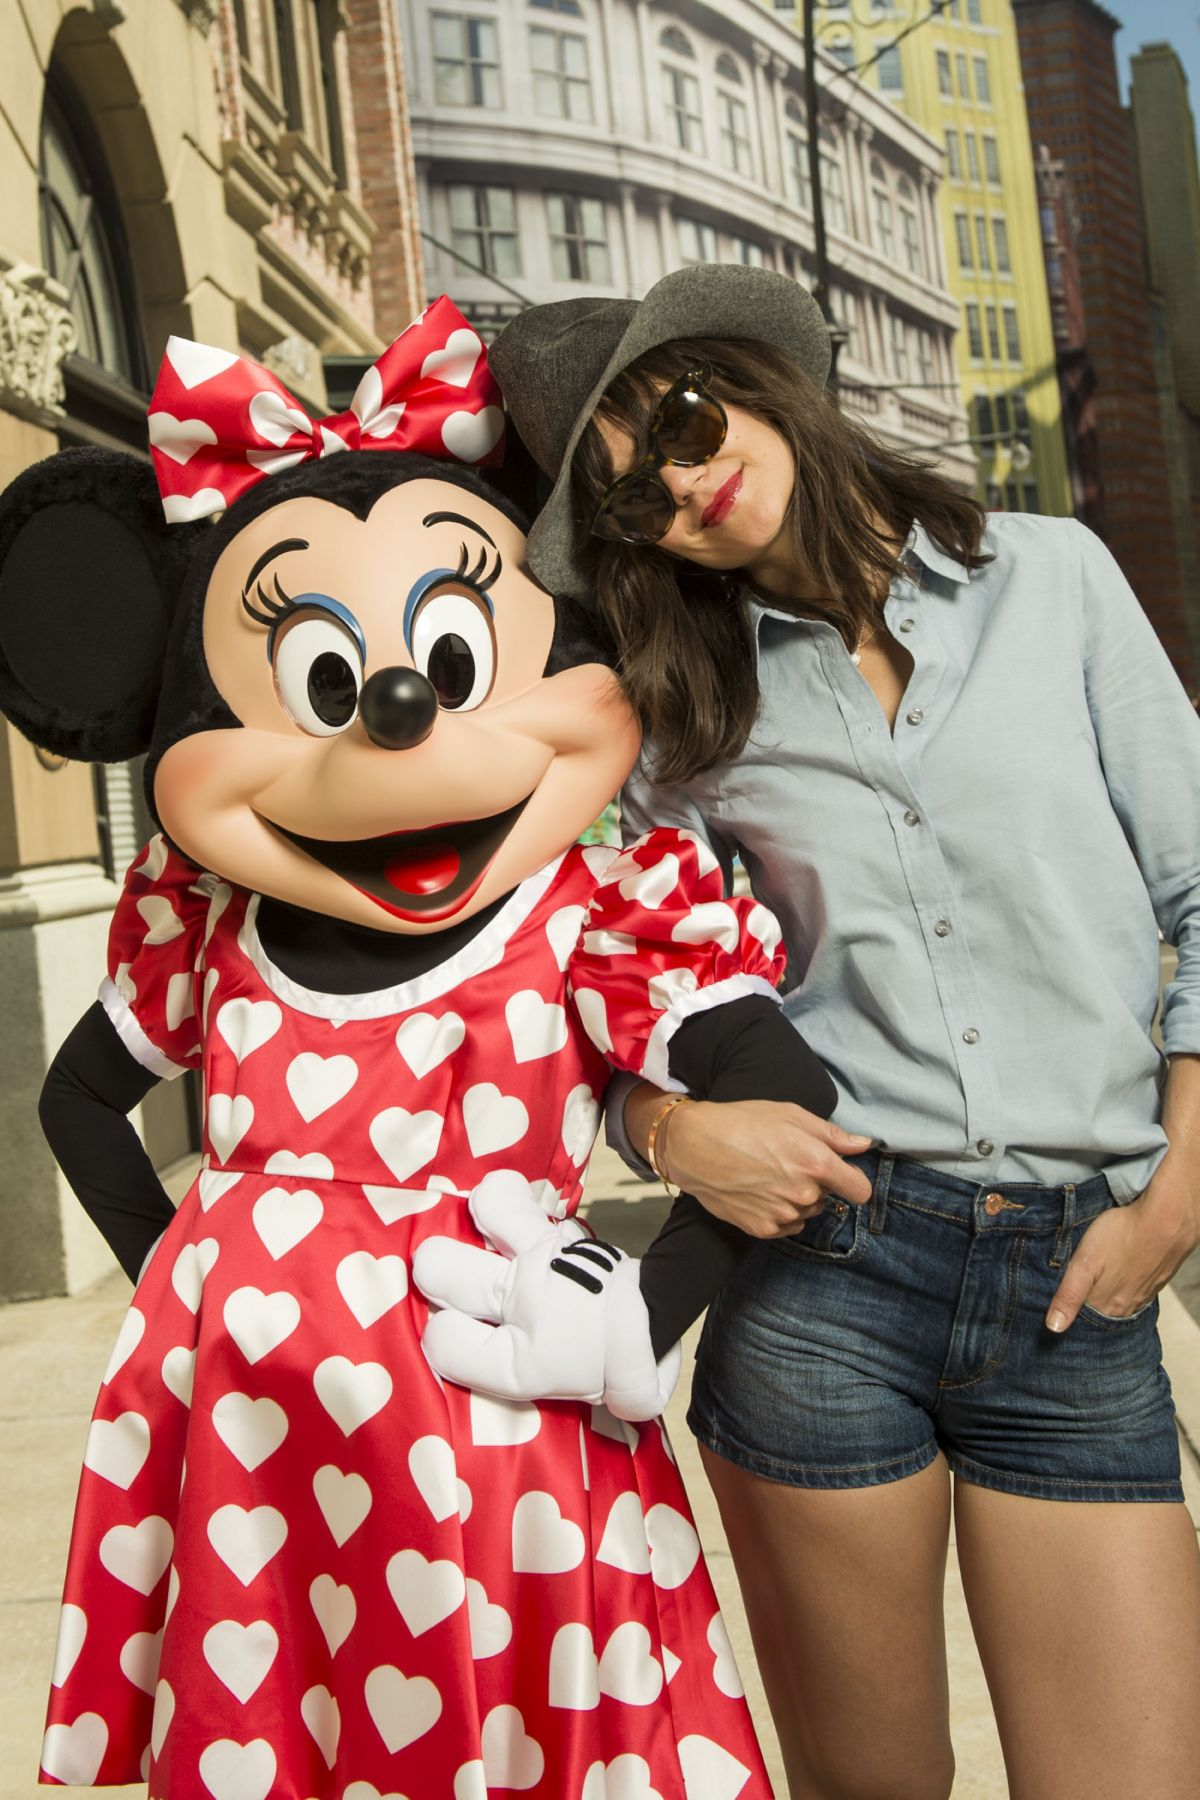 KATIE HOLMES in Daiosy Dukes at Walt Disney World Resort in Florida